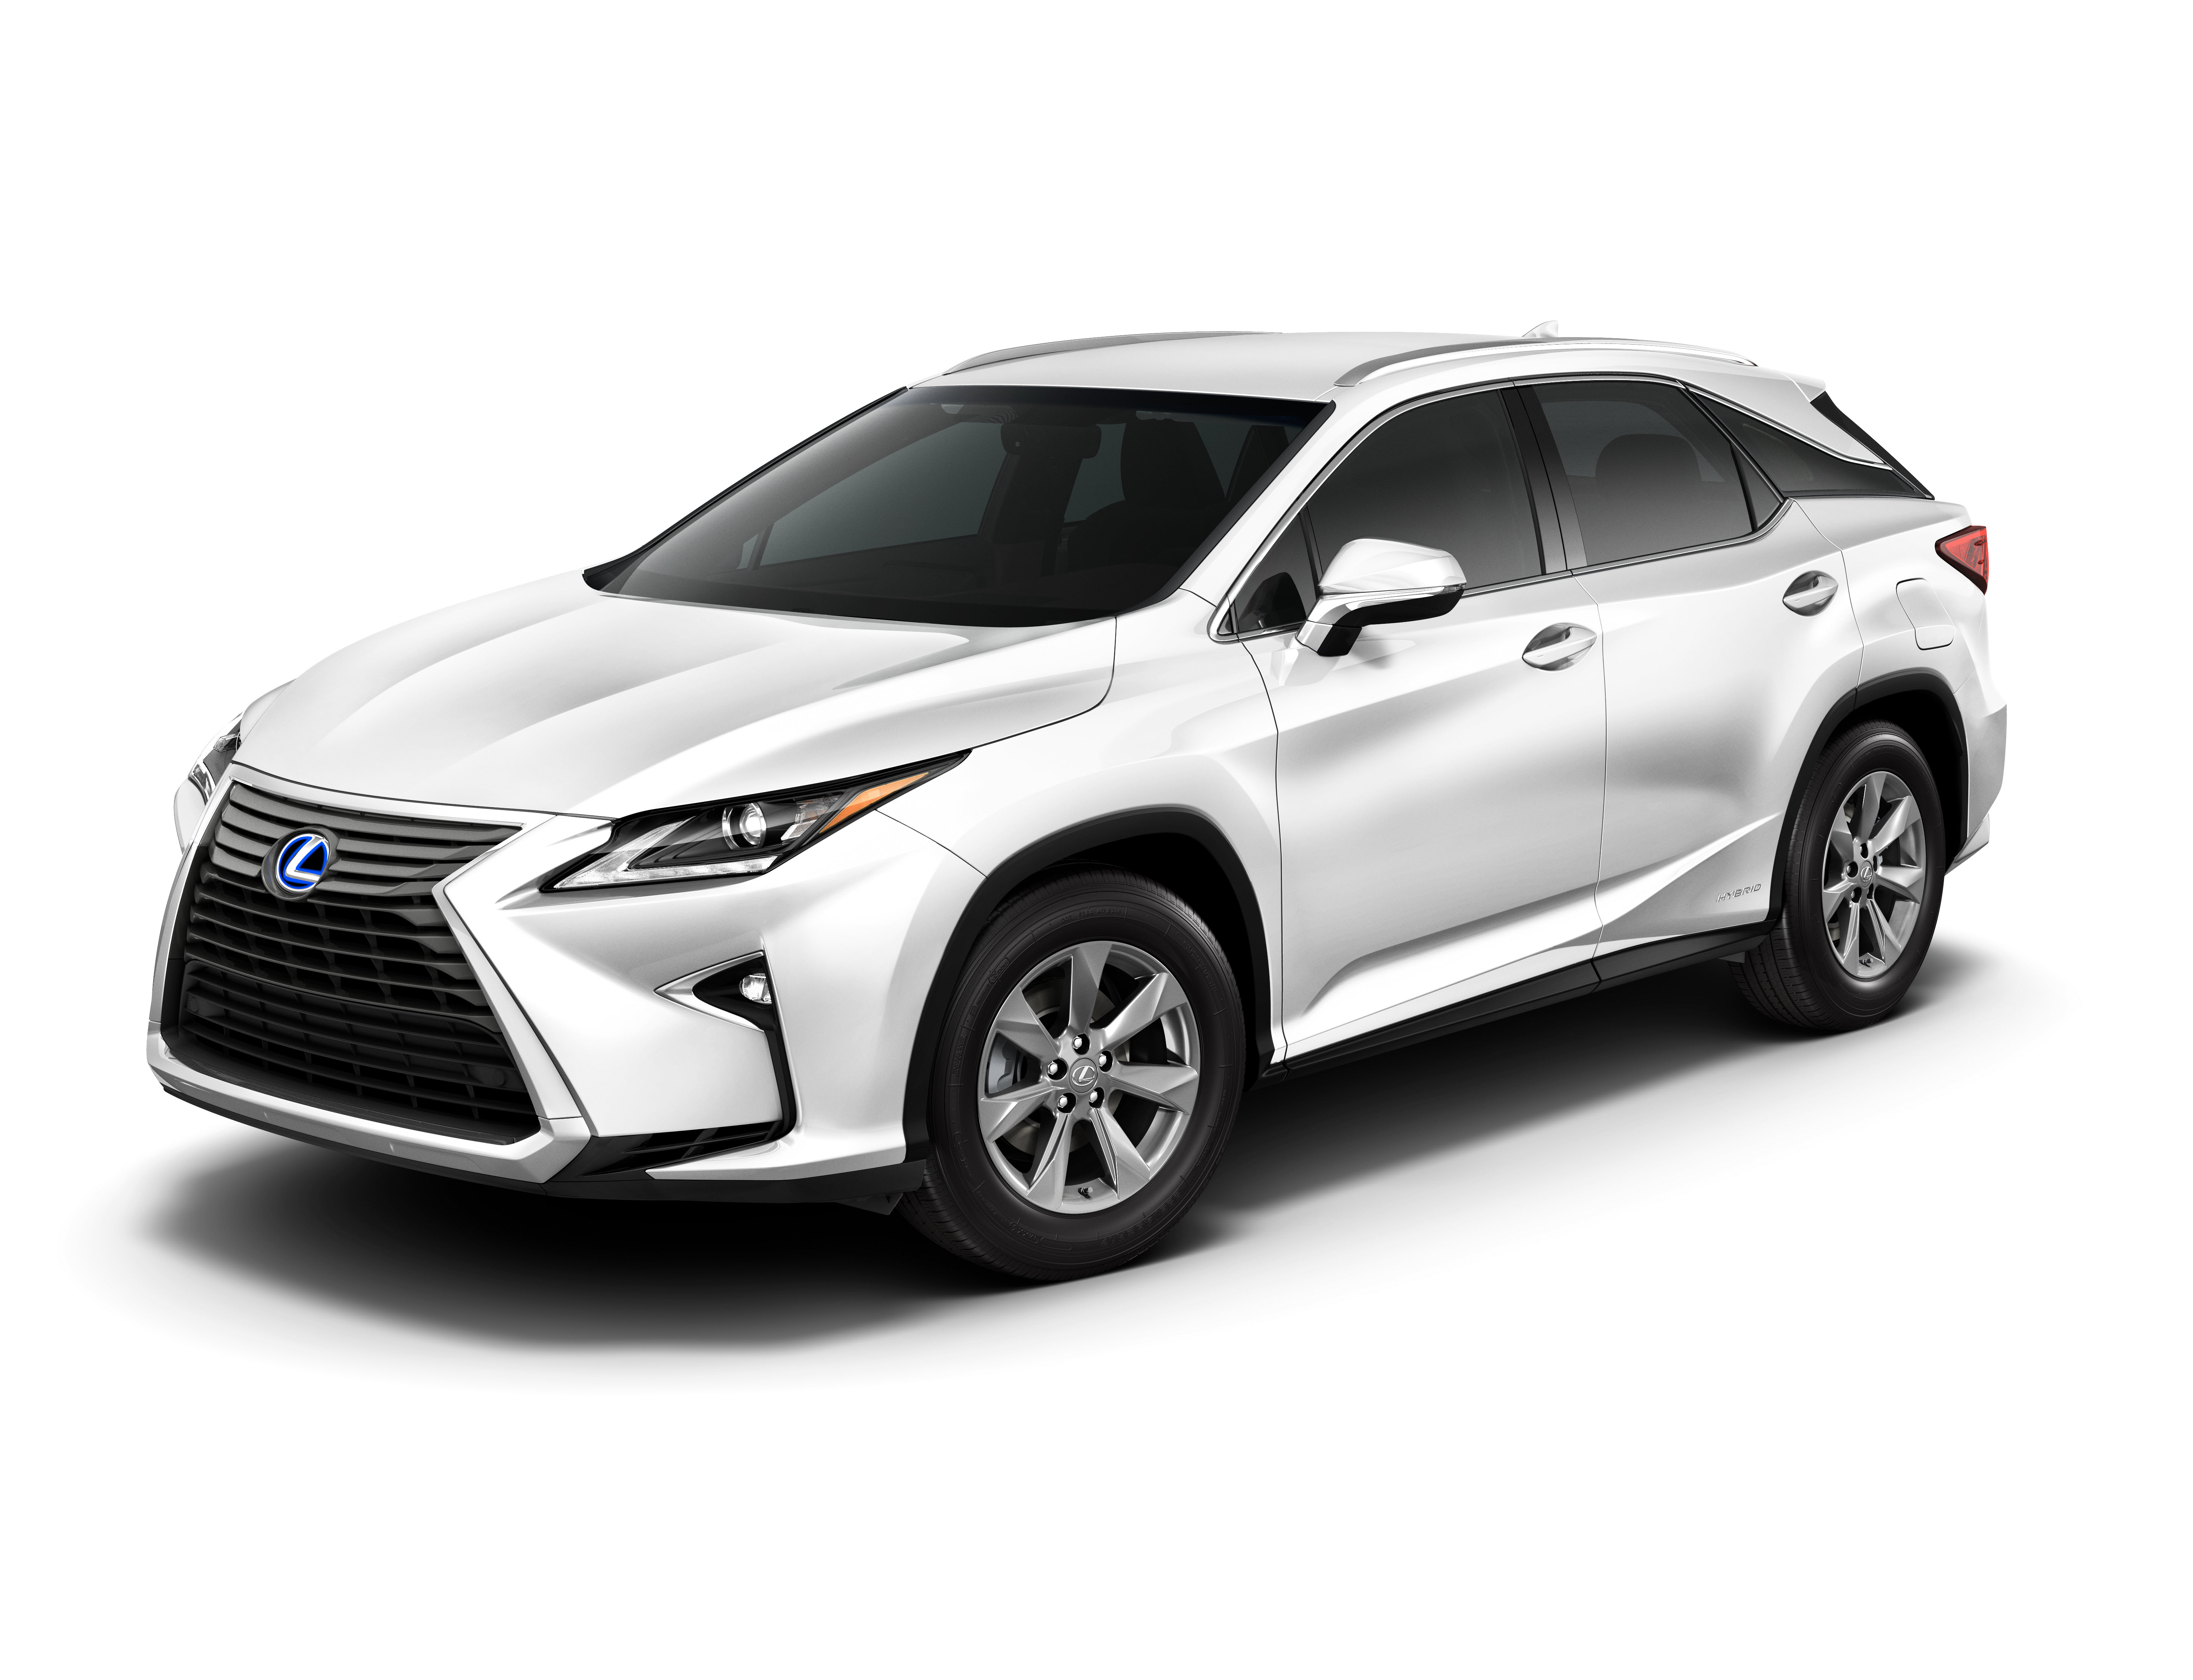 Lexus RX 450h News, Photos and Buying Information - Autoblog